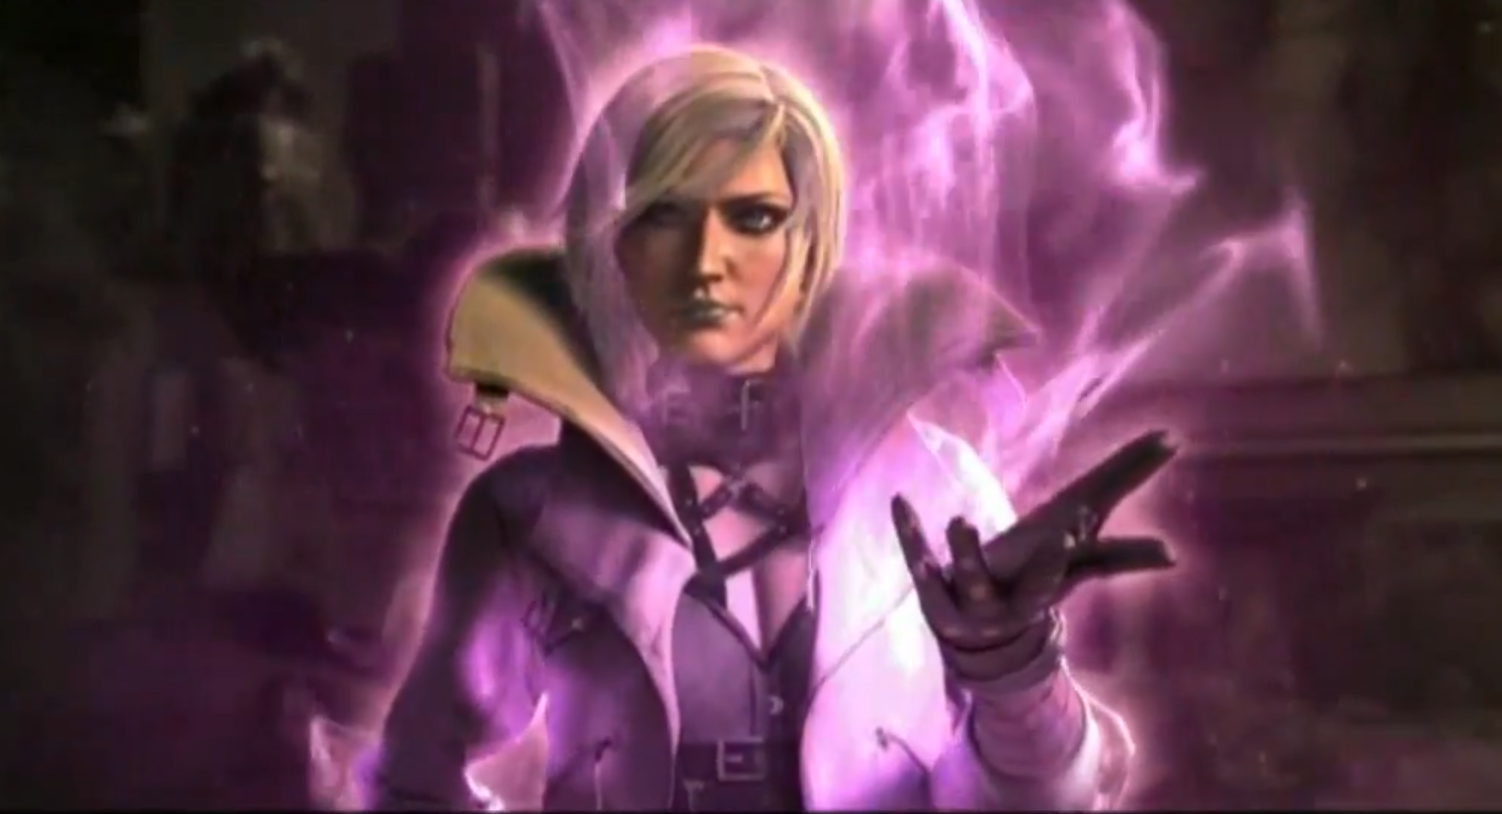 """Phantom Dust"" Developer Closes Its Doors - Game Is Still Being Developed"